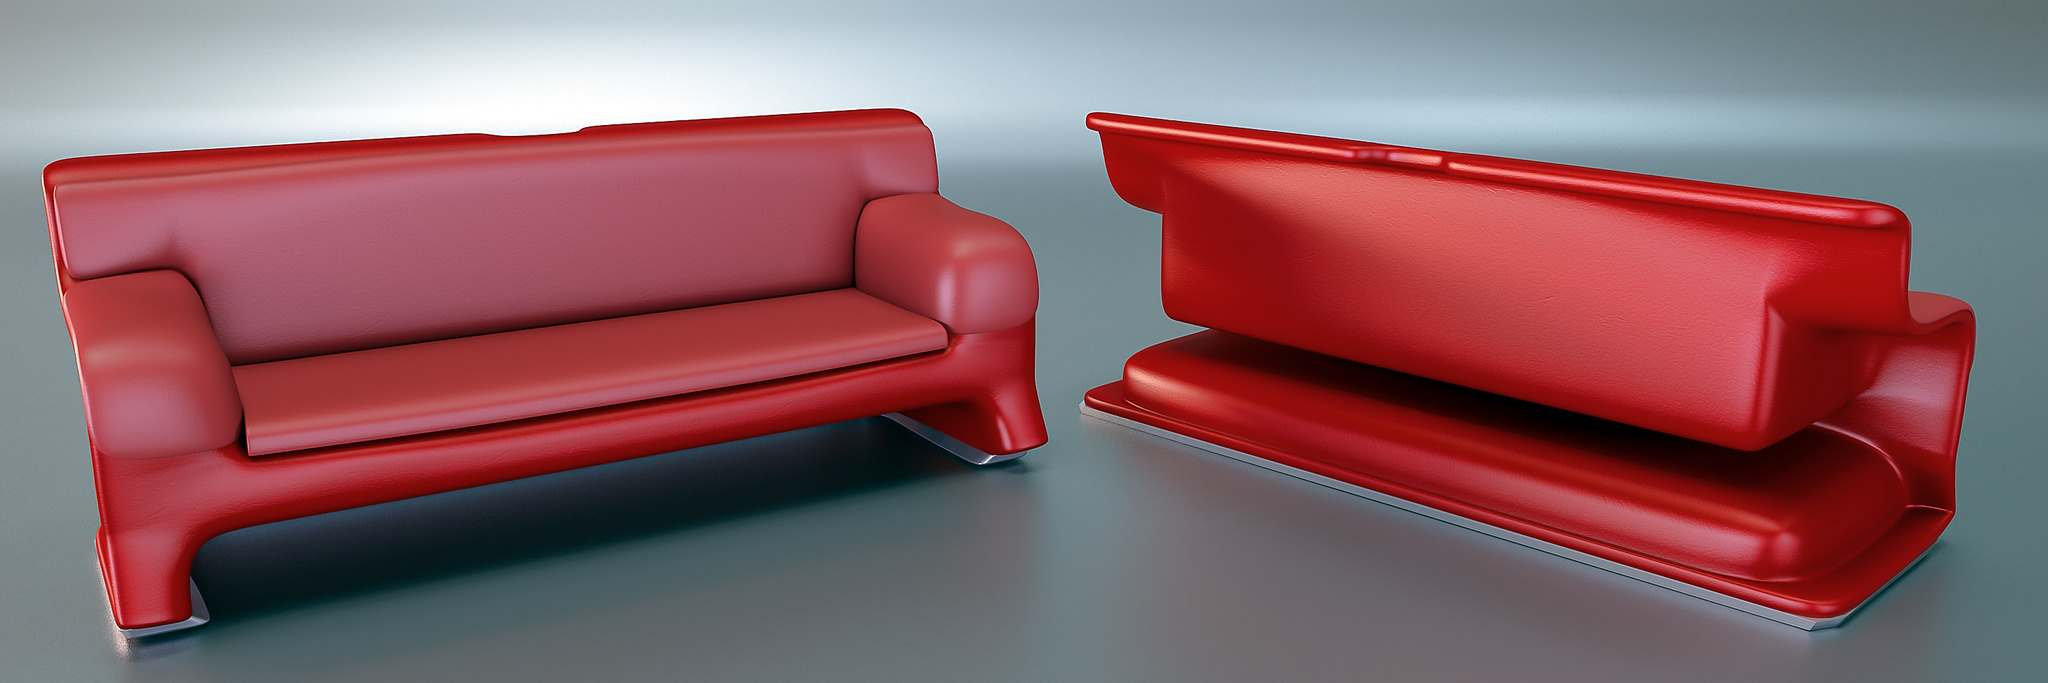 industrialdesign7 Industrial Design Modeled and Rendered in Modo by Mike Grauer